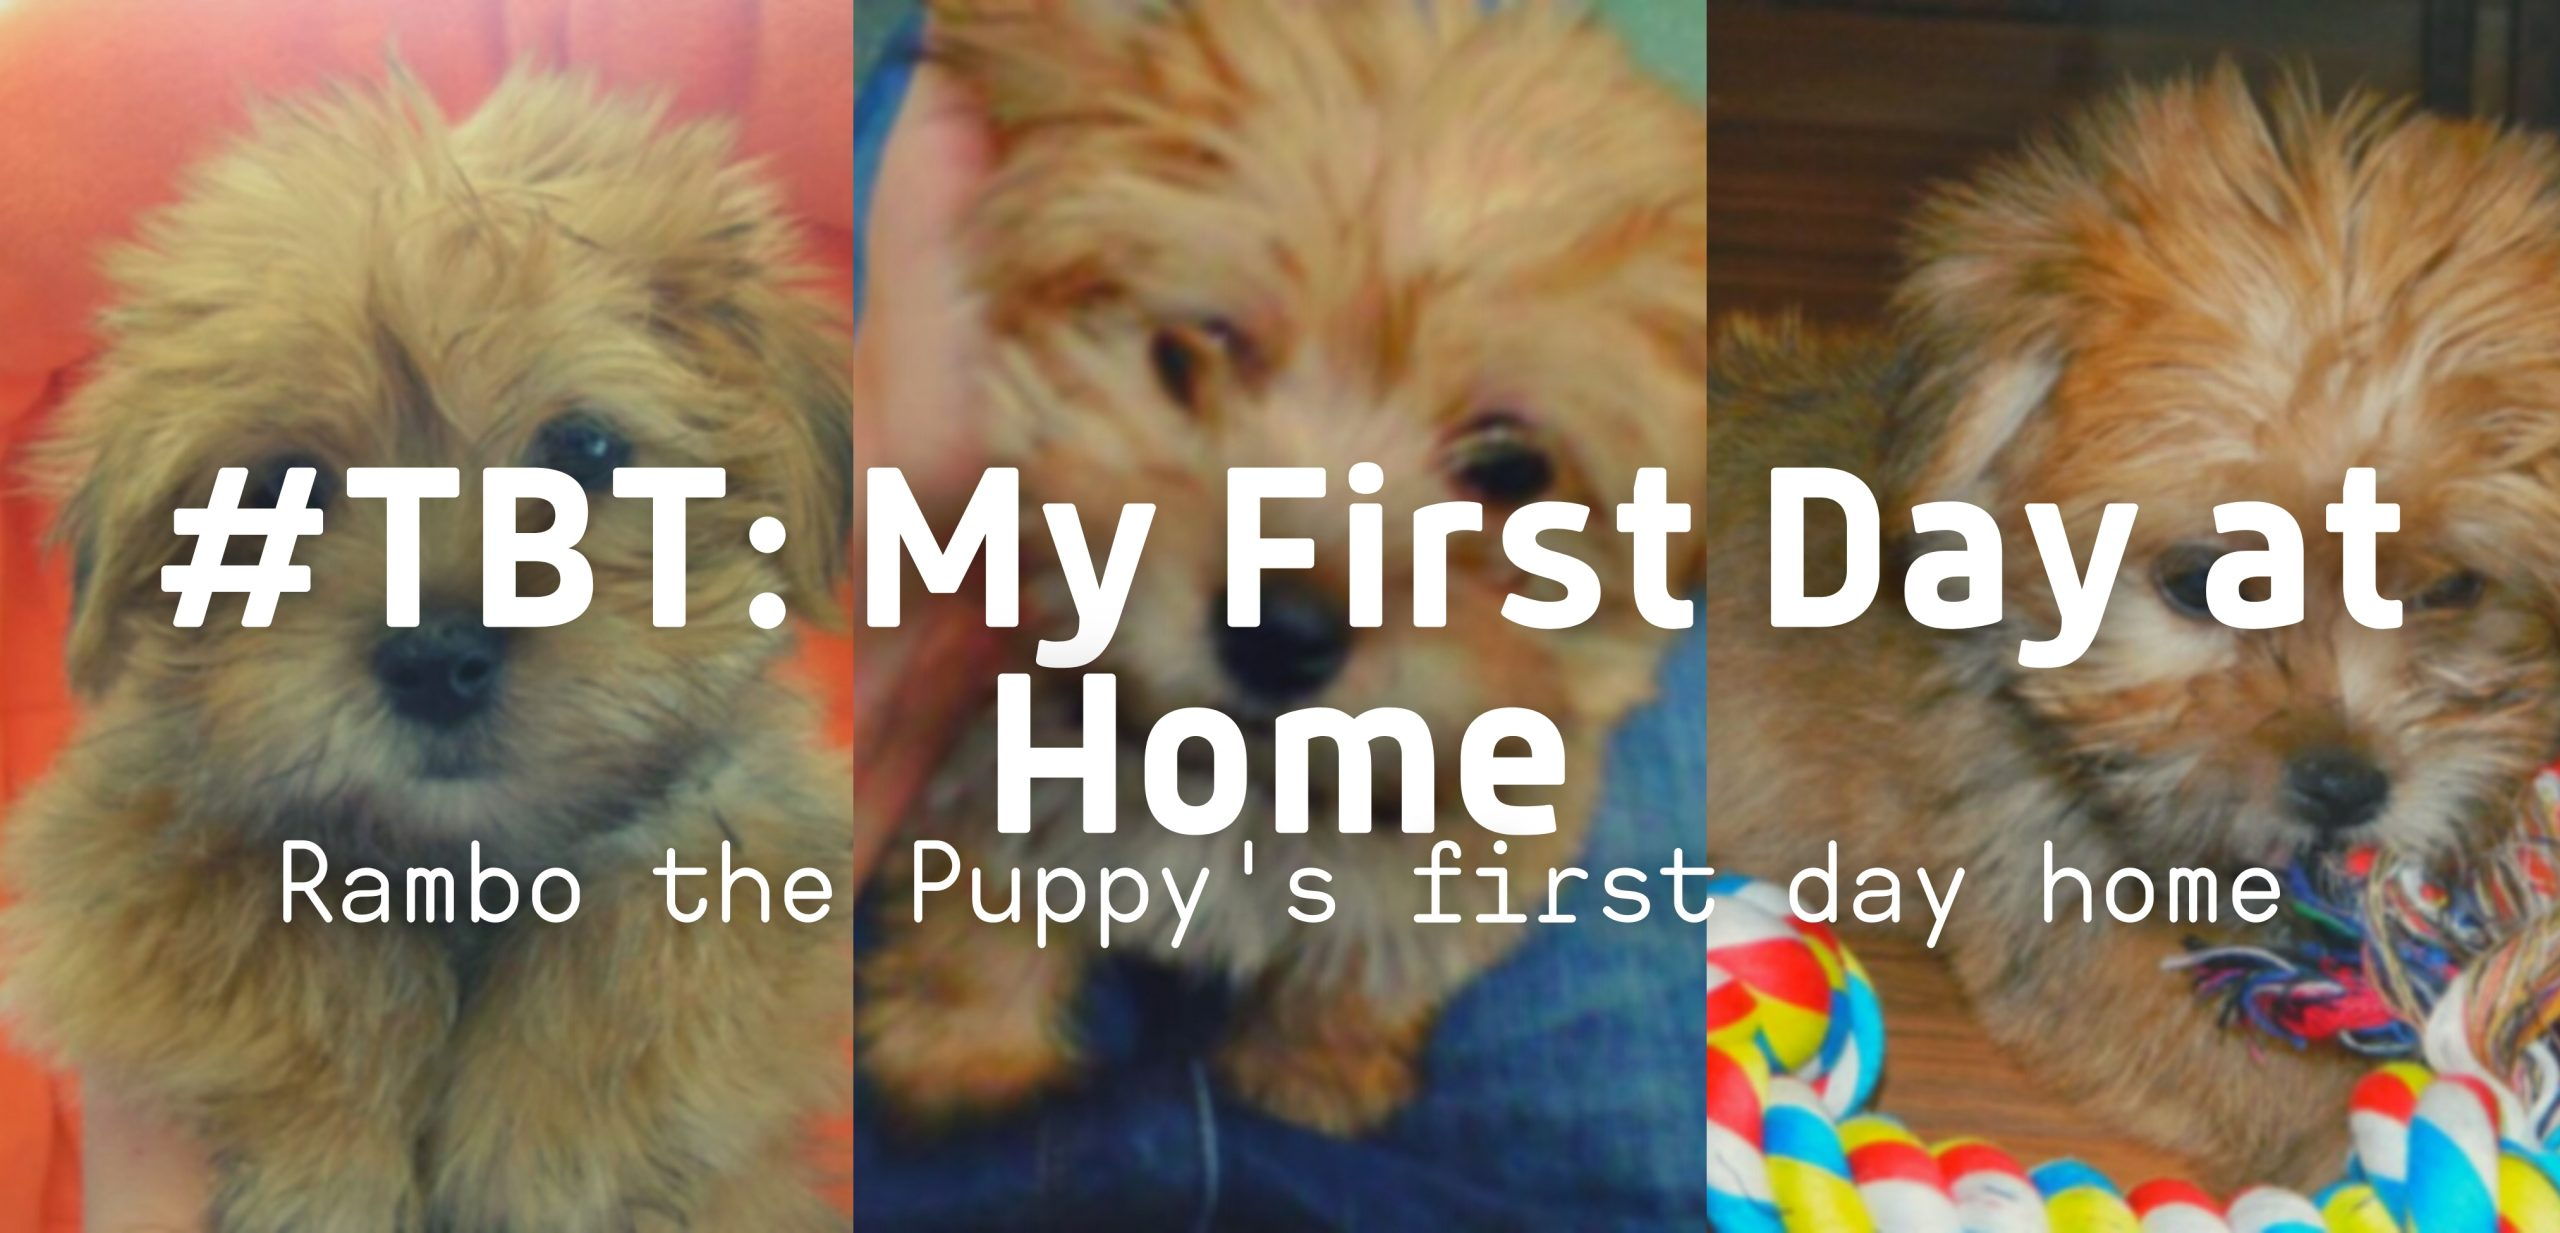 #TBT: Rambo the Puppy's First Day Home!